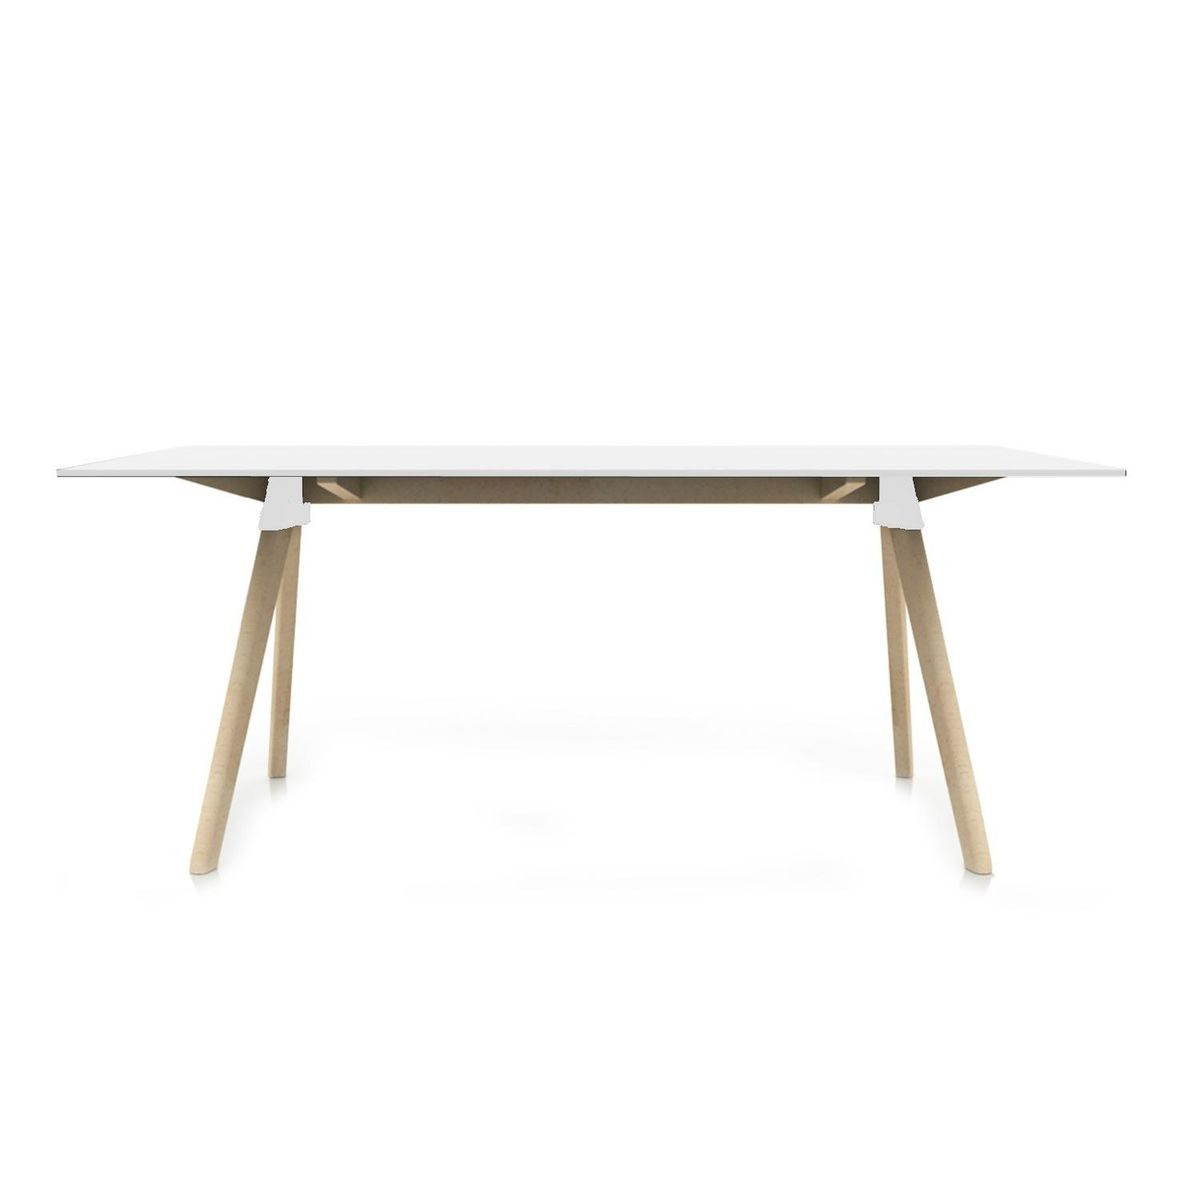 Butch the wild bunch table 129x75cm magis for Table exterieur hpl